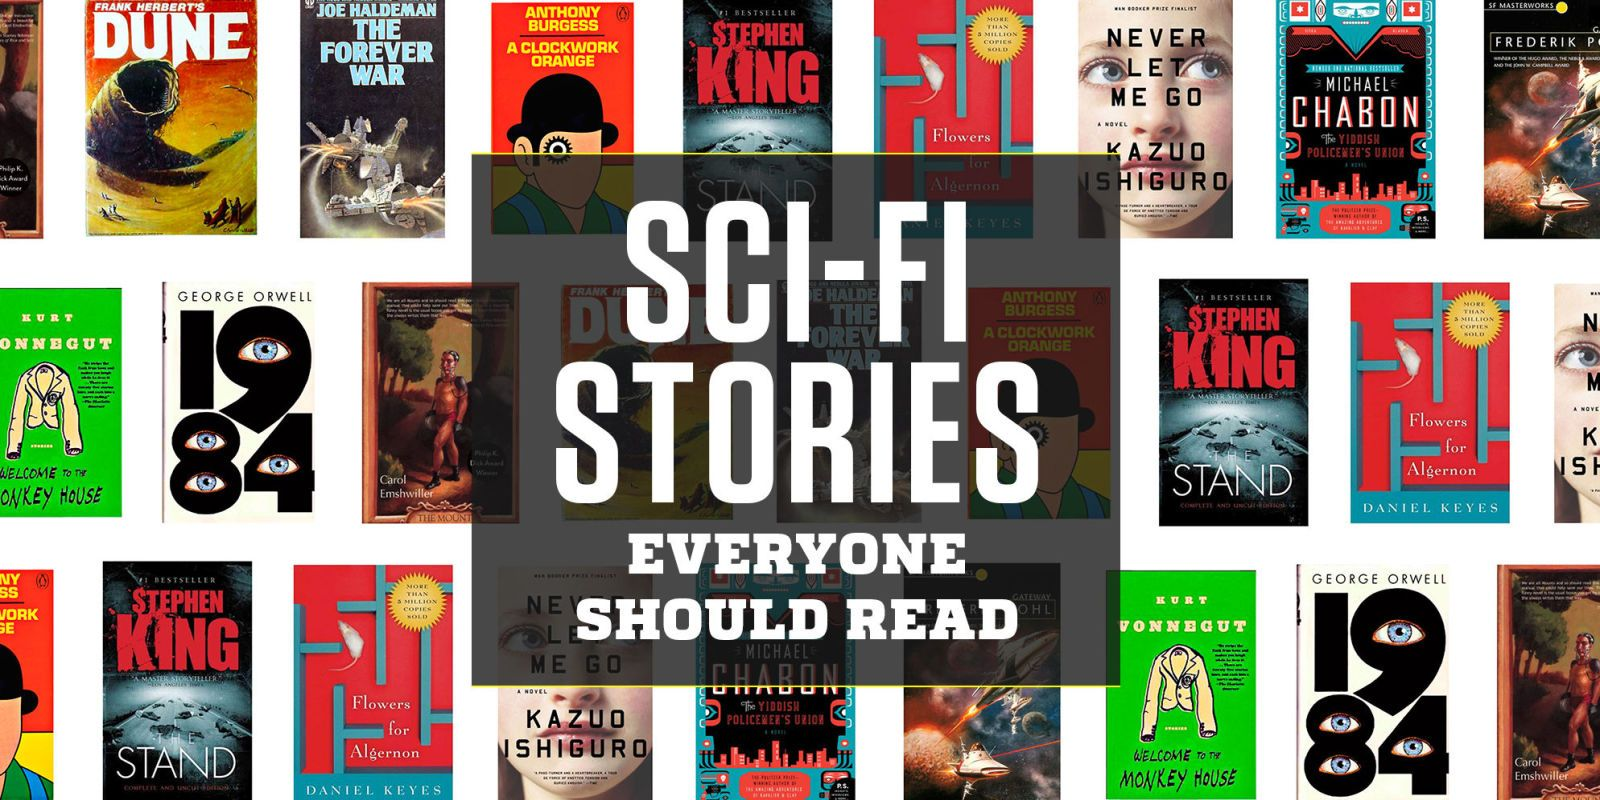 The 30 Sci-Fi Stories Everyone Should Read